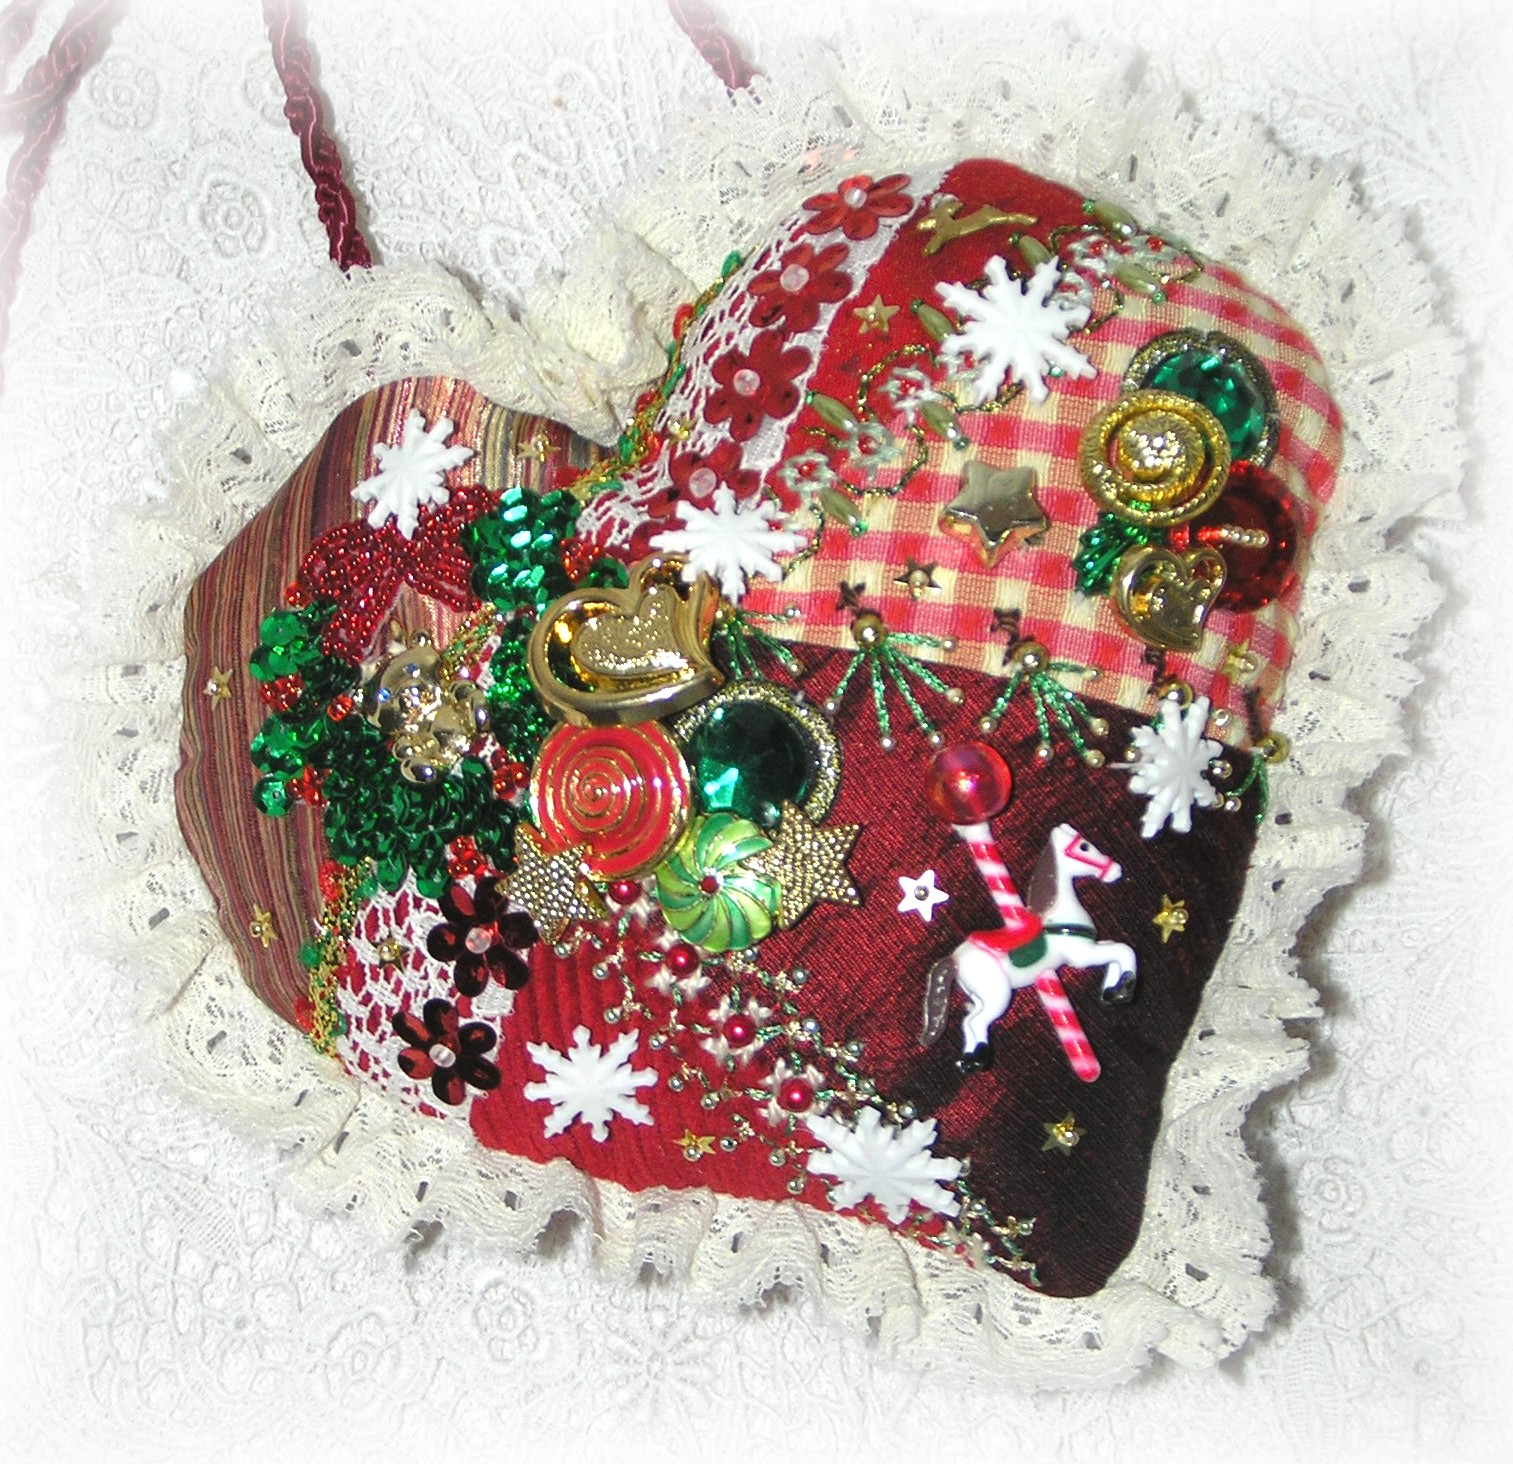 Quilted Christmas Ornaments.Kitty And Me Designs Crazy Quilt Christmas Ornaments